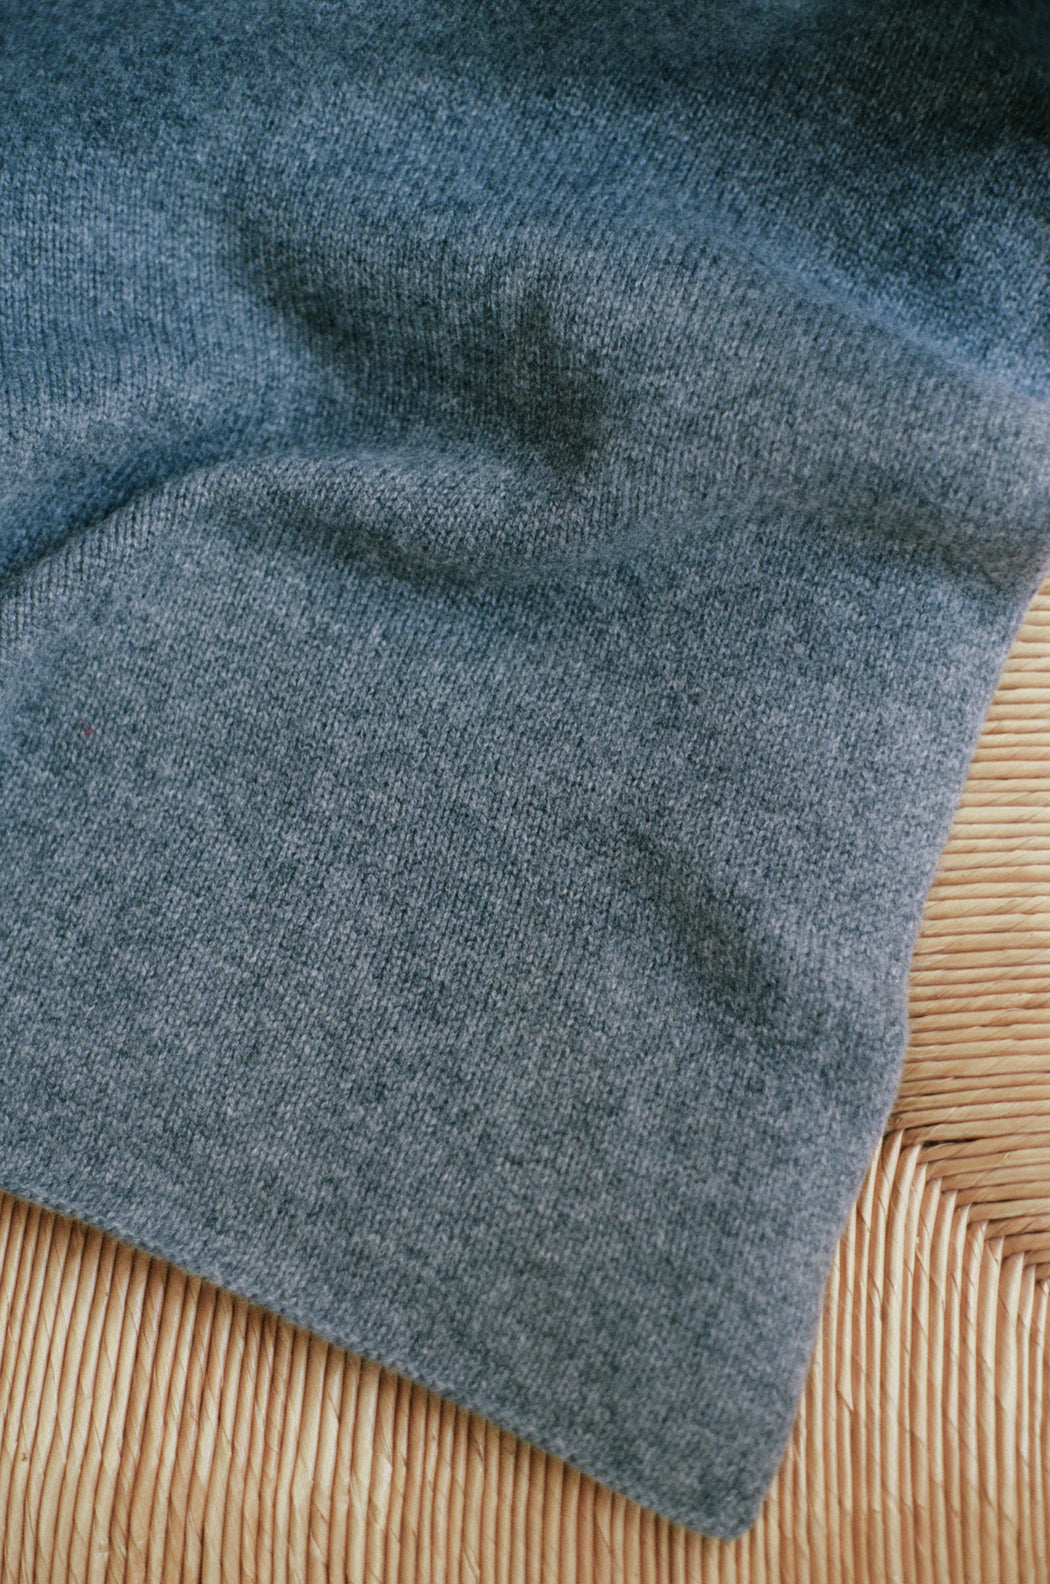 Oversized Italian Cashmere Jersey Knit Blanket - Charcoal